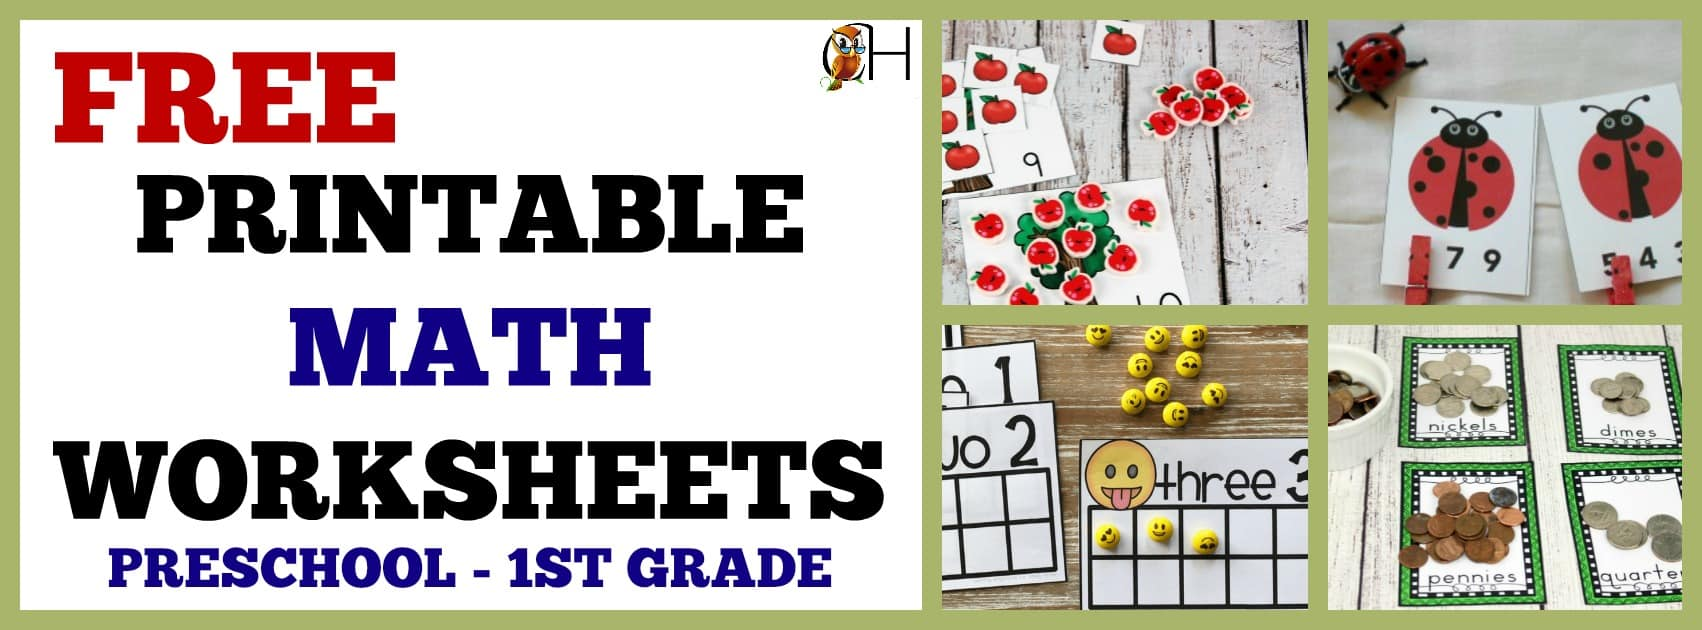 hight resolution of Free Printable Math Worksheets for Preschool – 1st Grade – Classically  Homeschooling